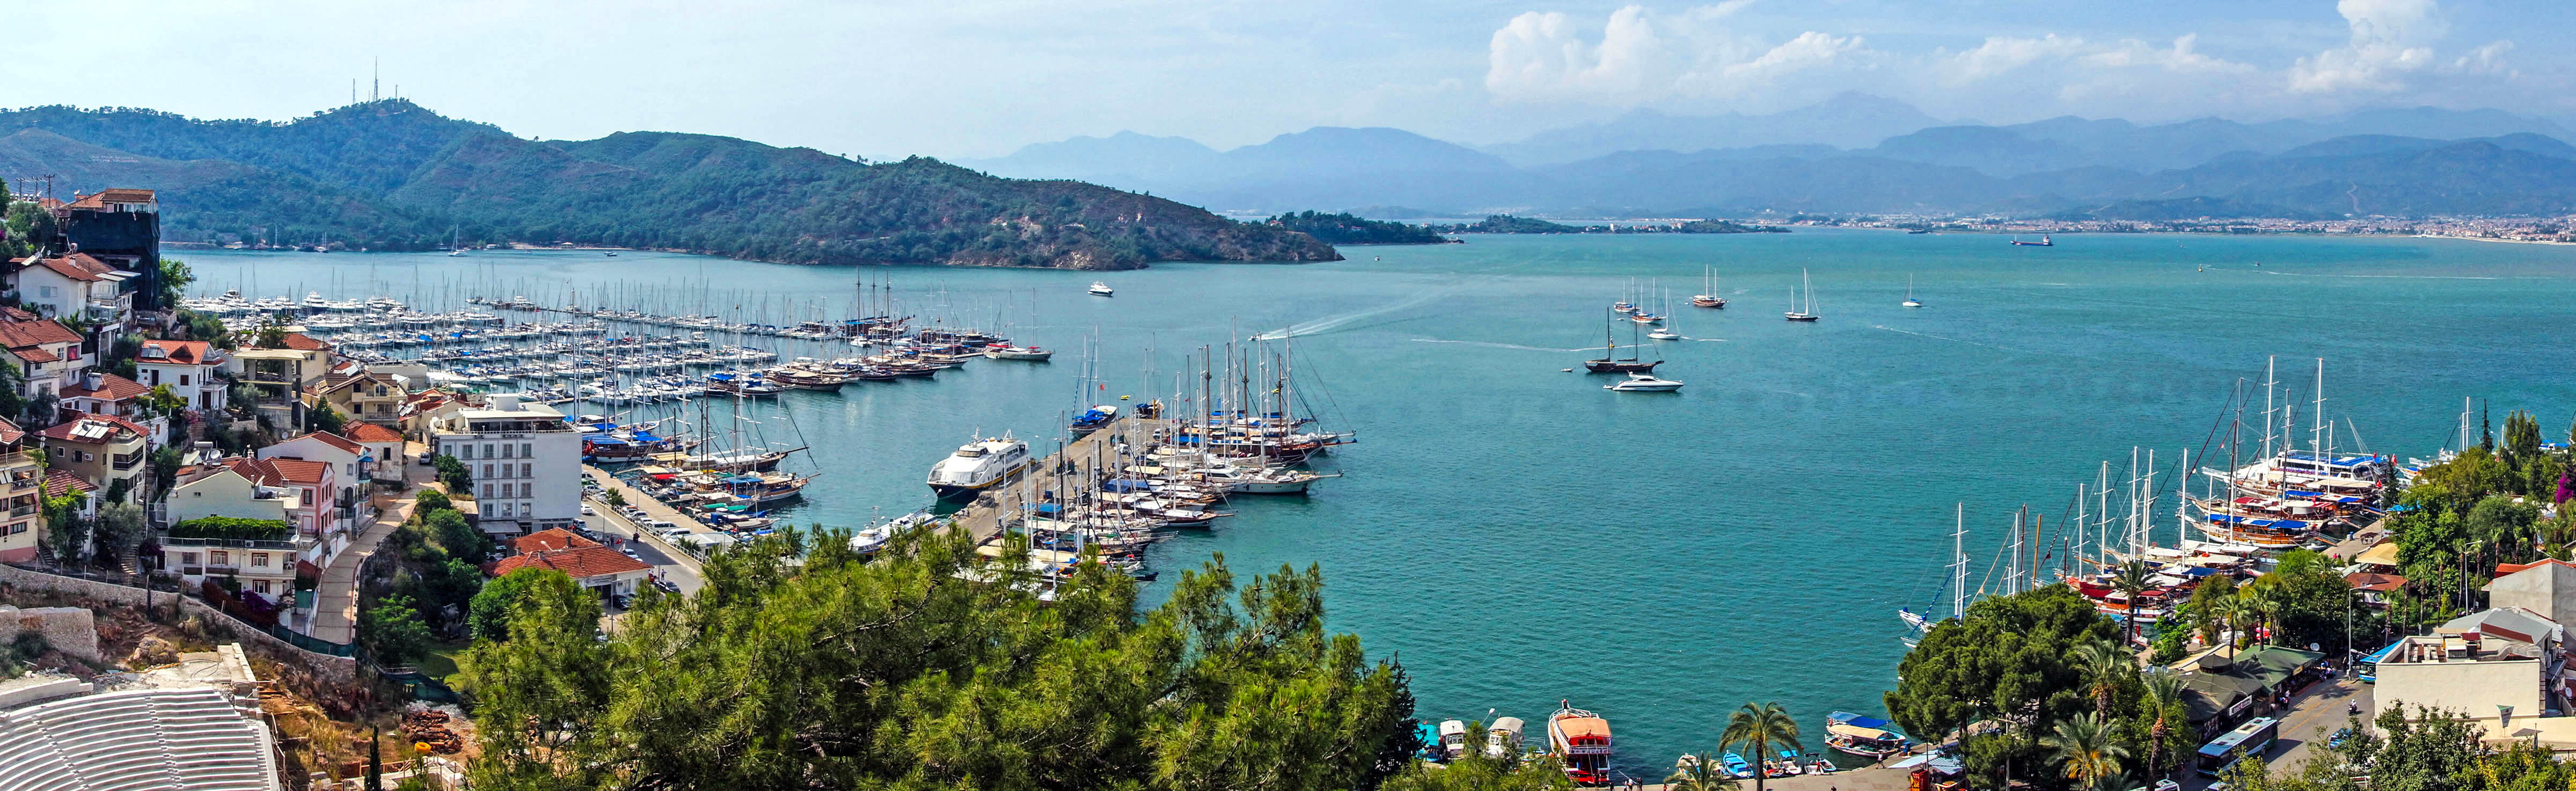 harbor of Marmaris